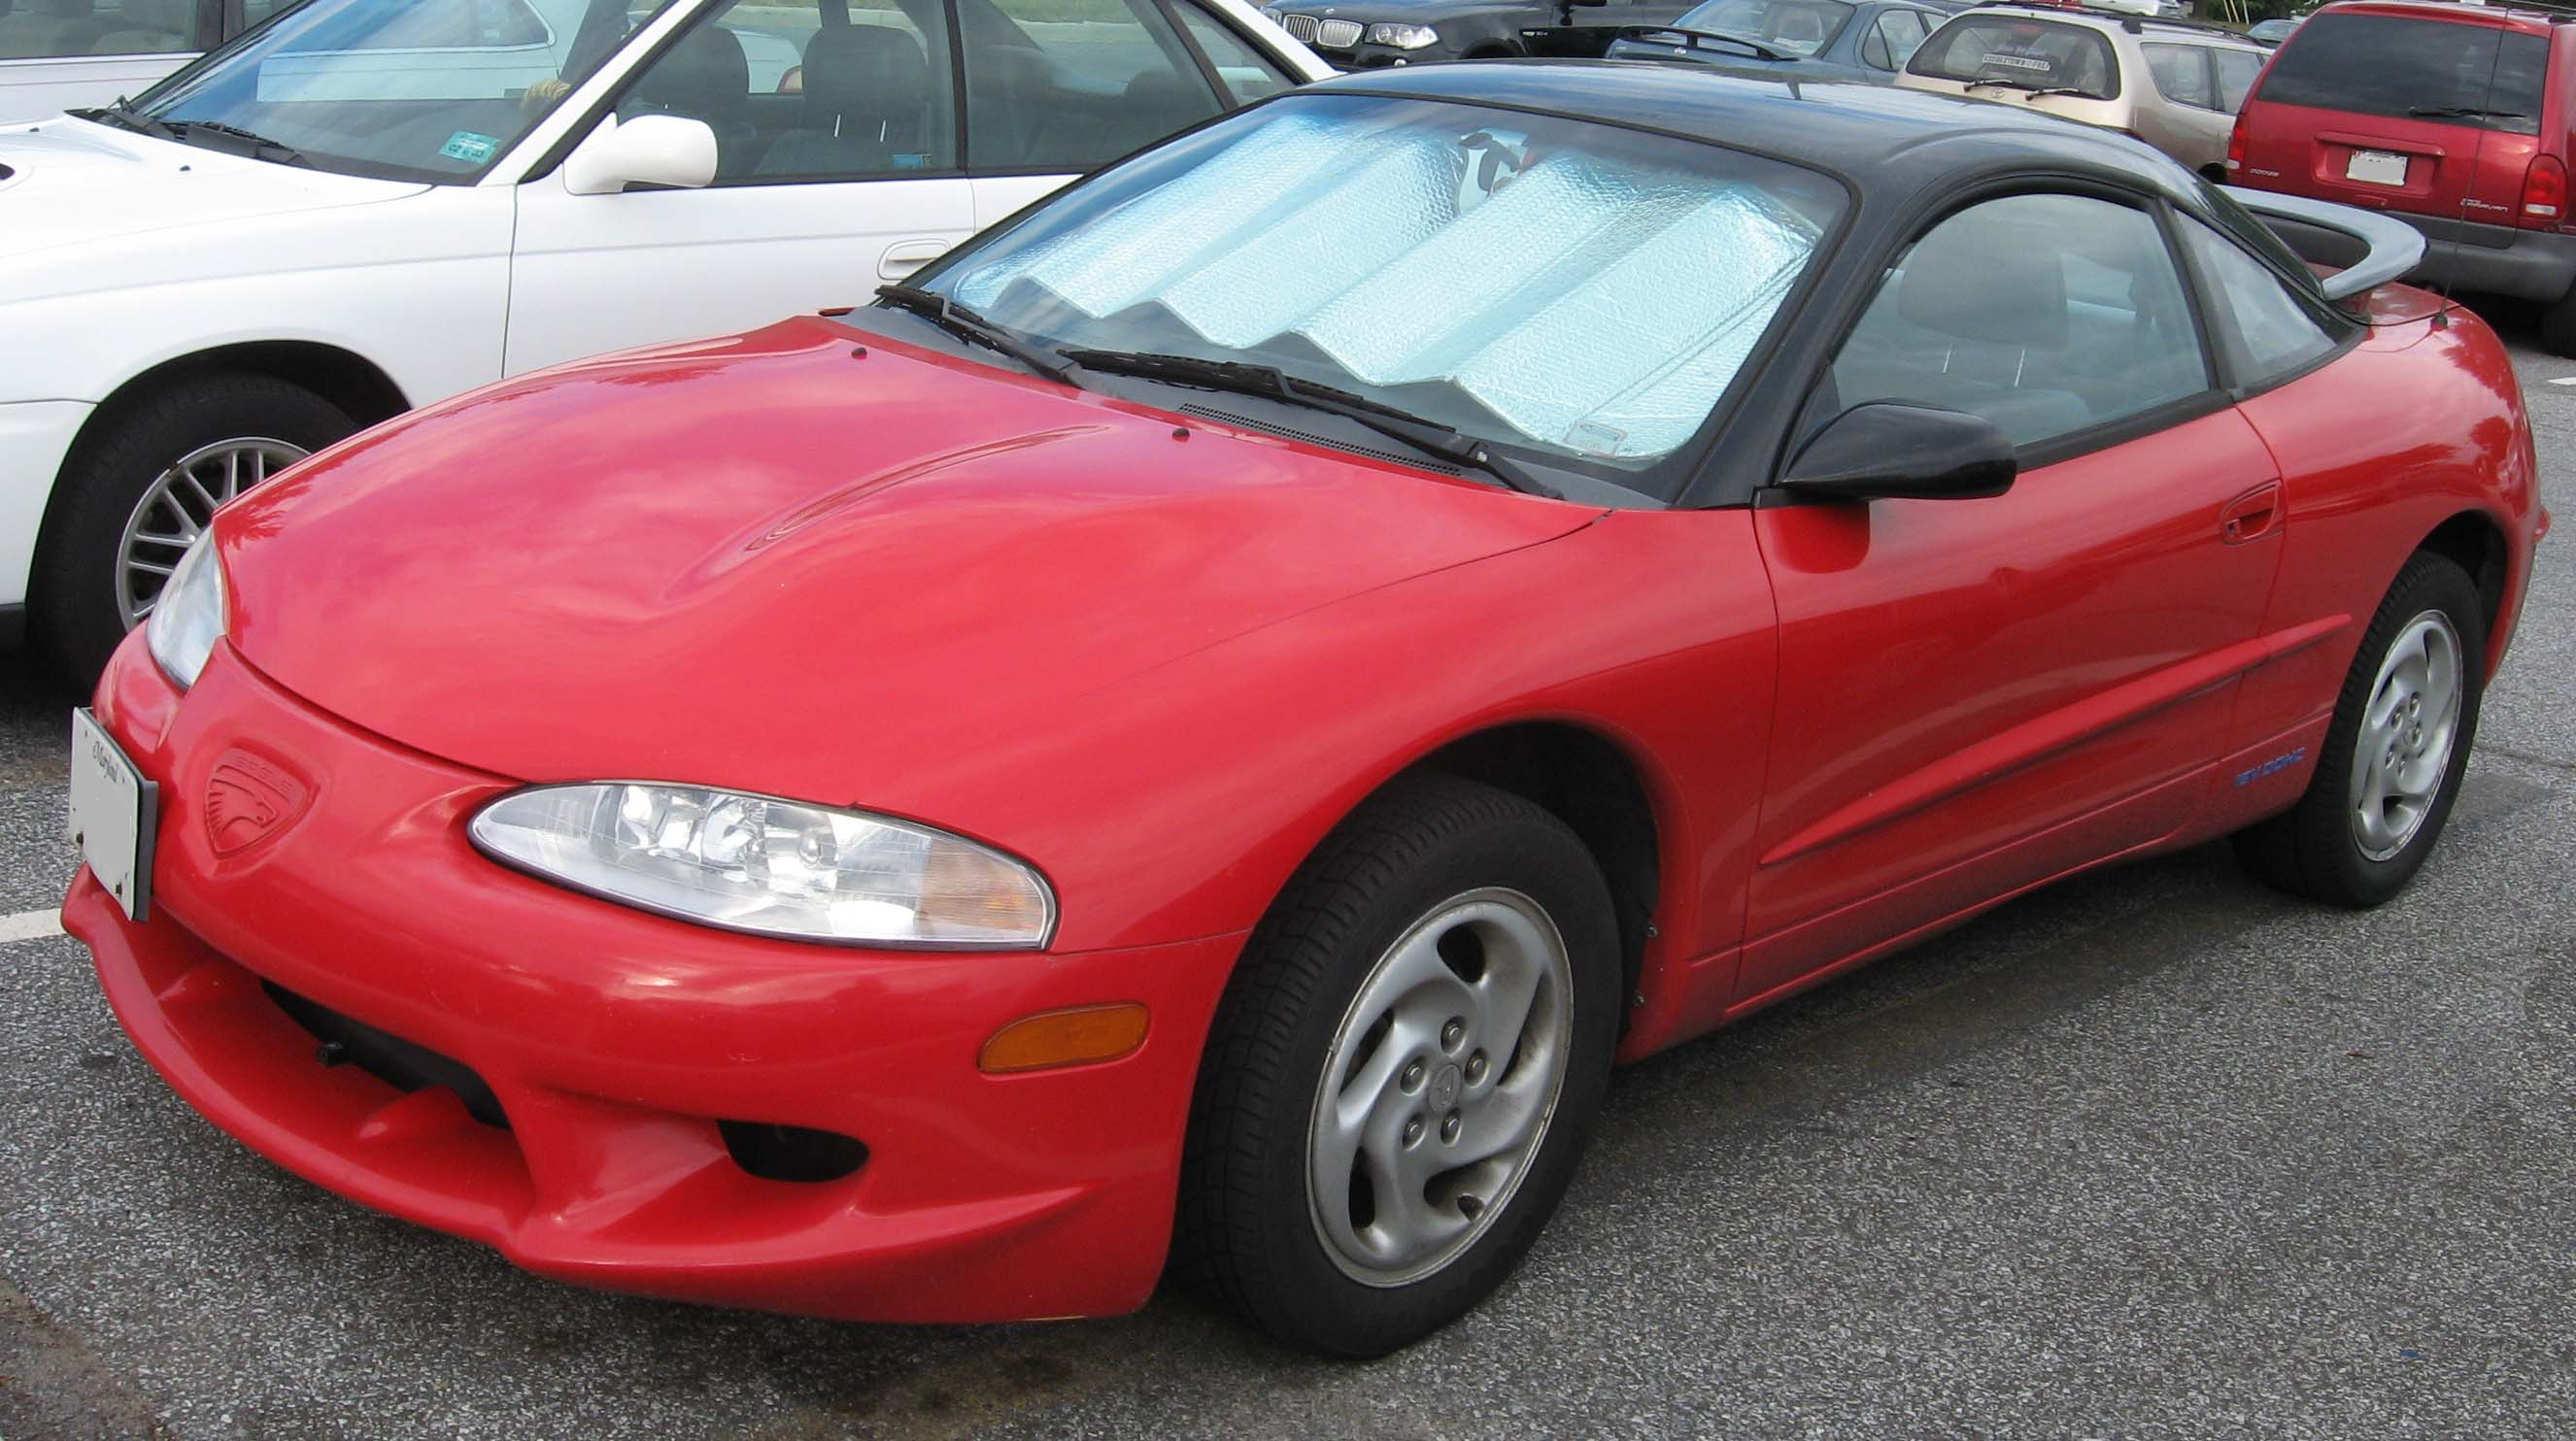 Eagle Talon #1